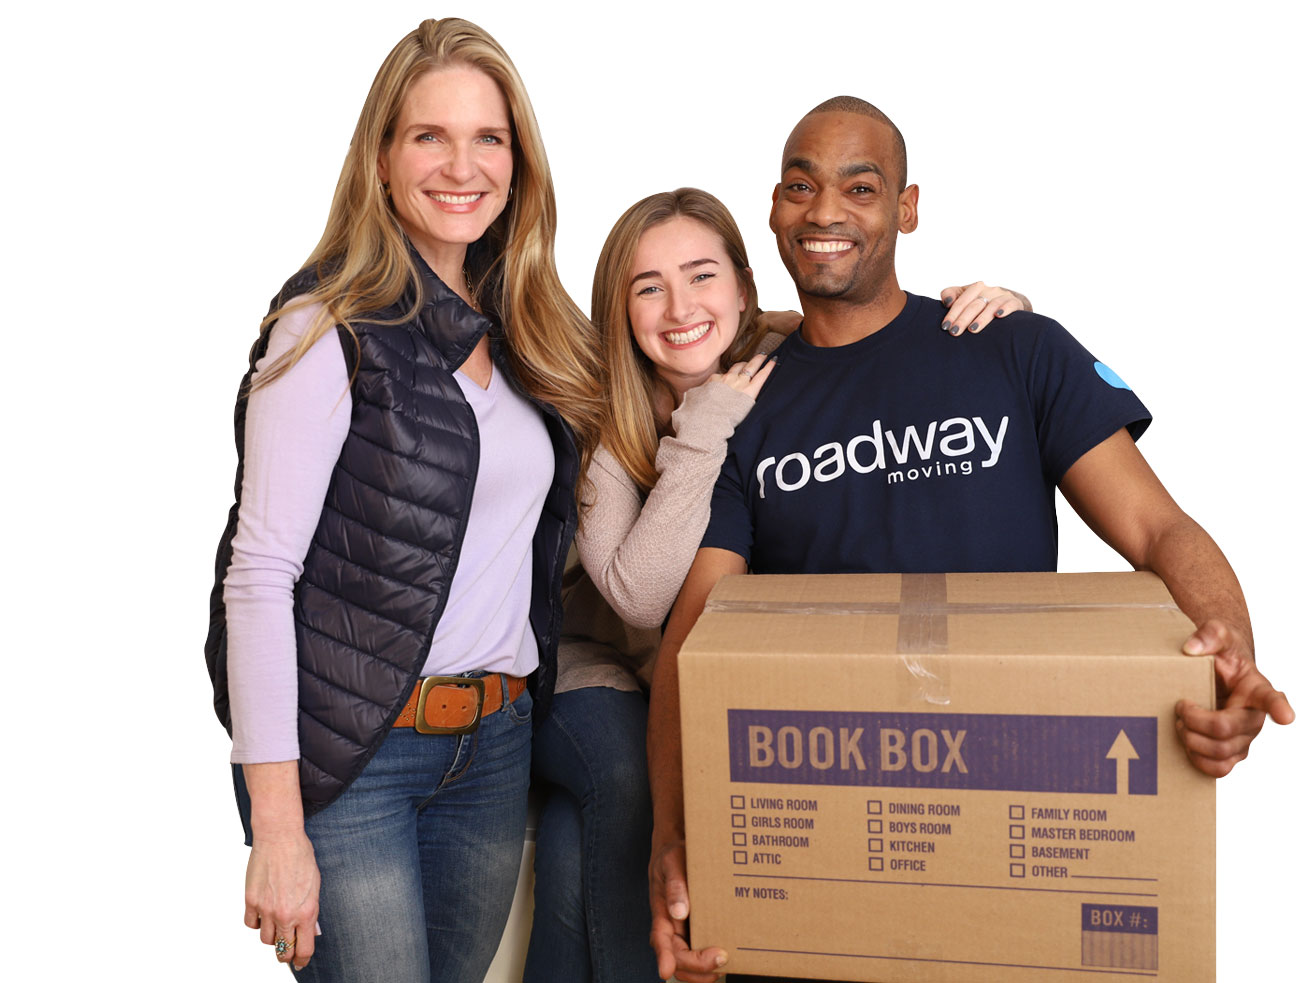 Roadway Moving Family